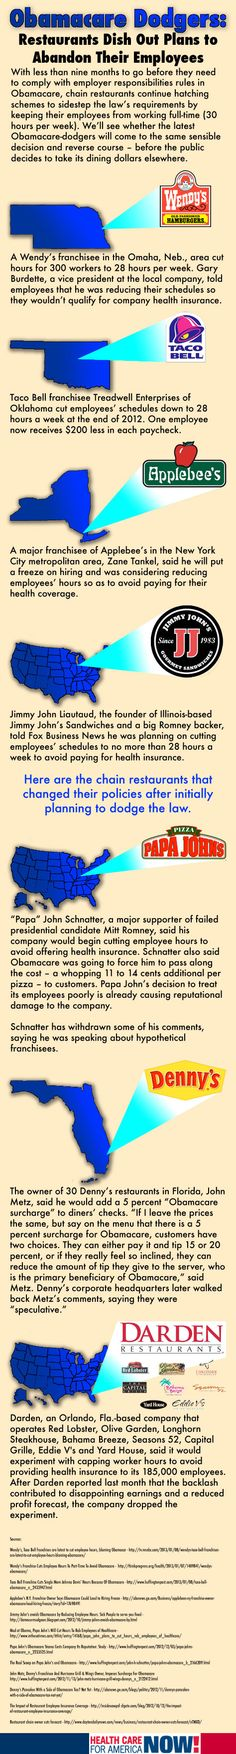 More Chain Restaurants Serve Up Unsavory Plans to Dodge Responsibilities Under Obamacare